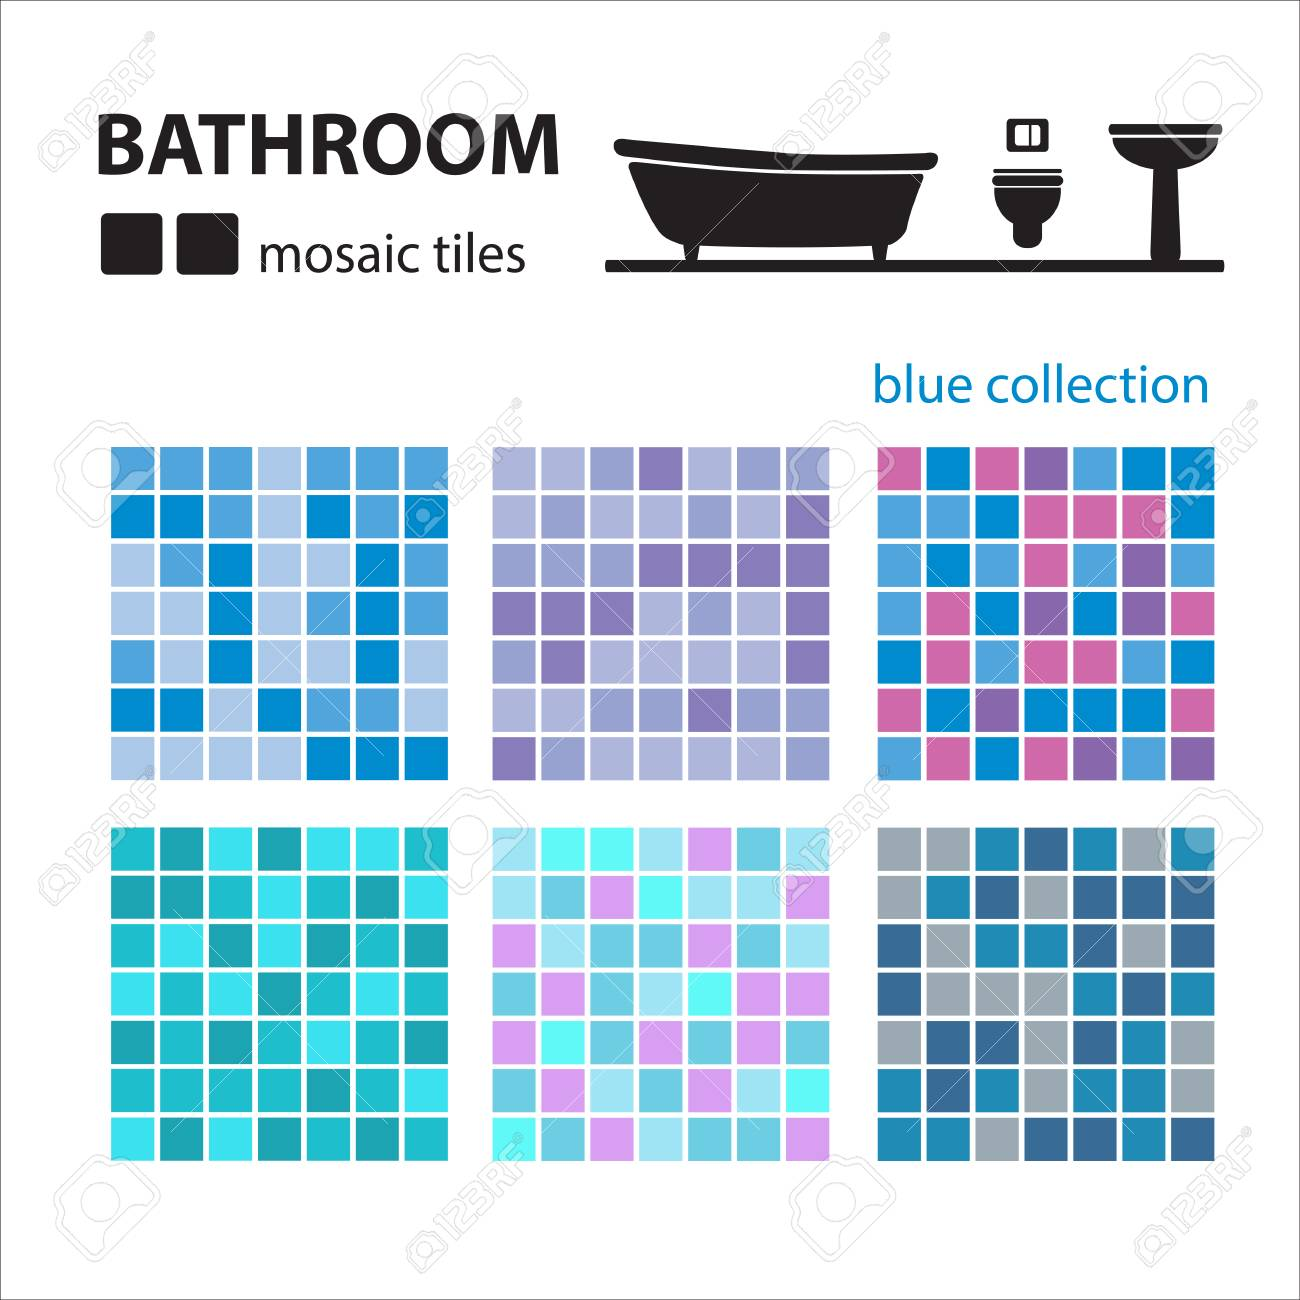 Bathroom Mosaic Tiles Set Isolated On White Background. Ceramic ...